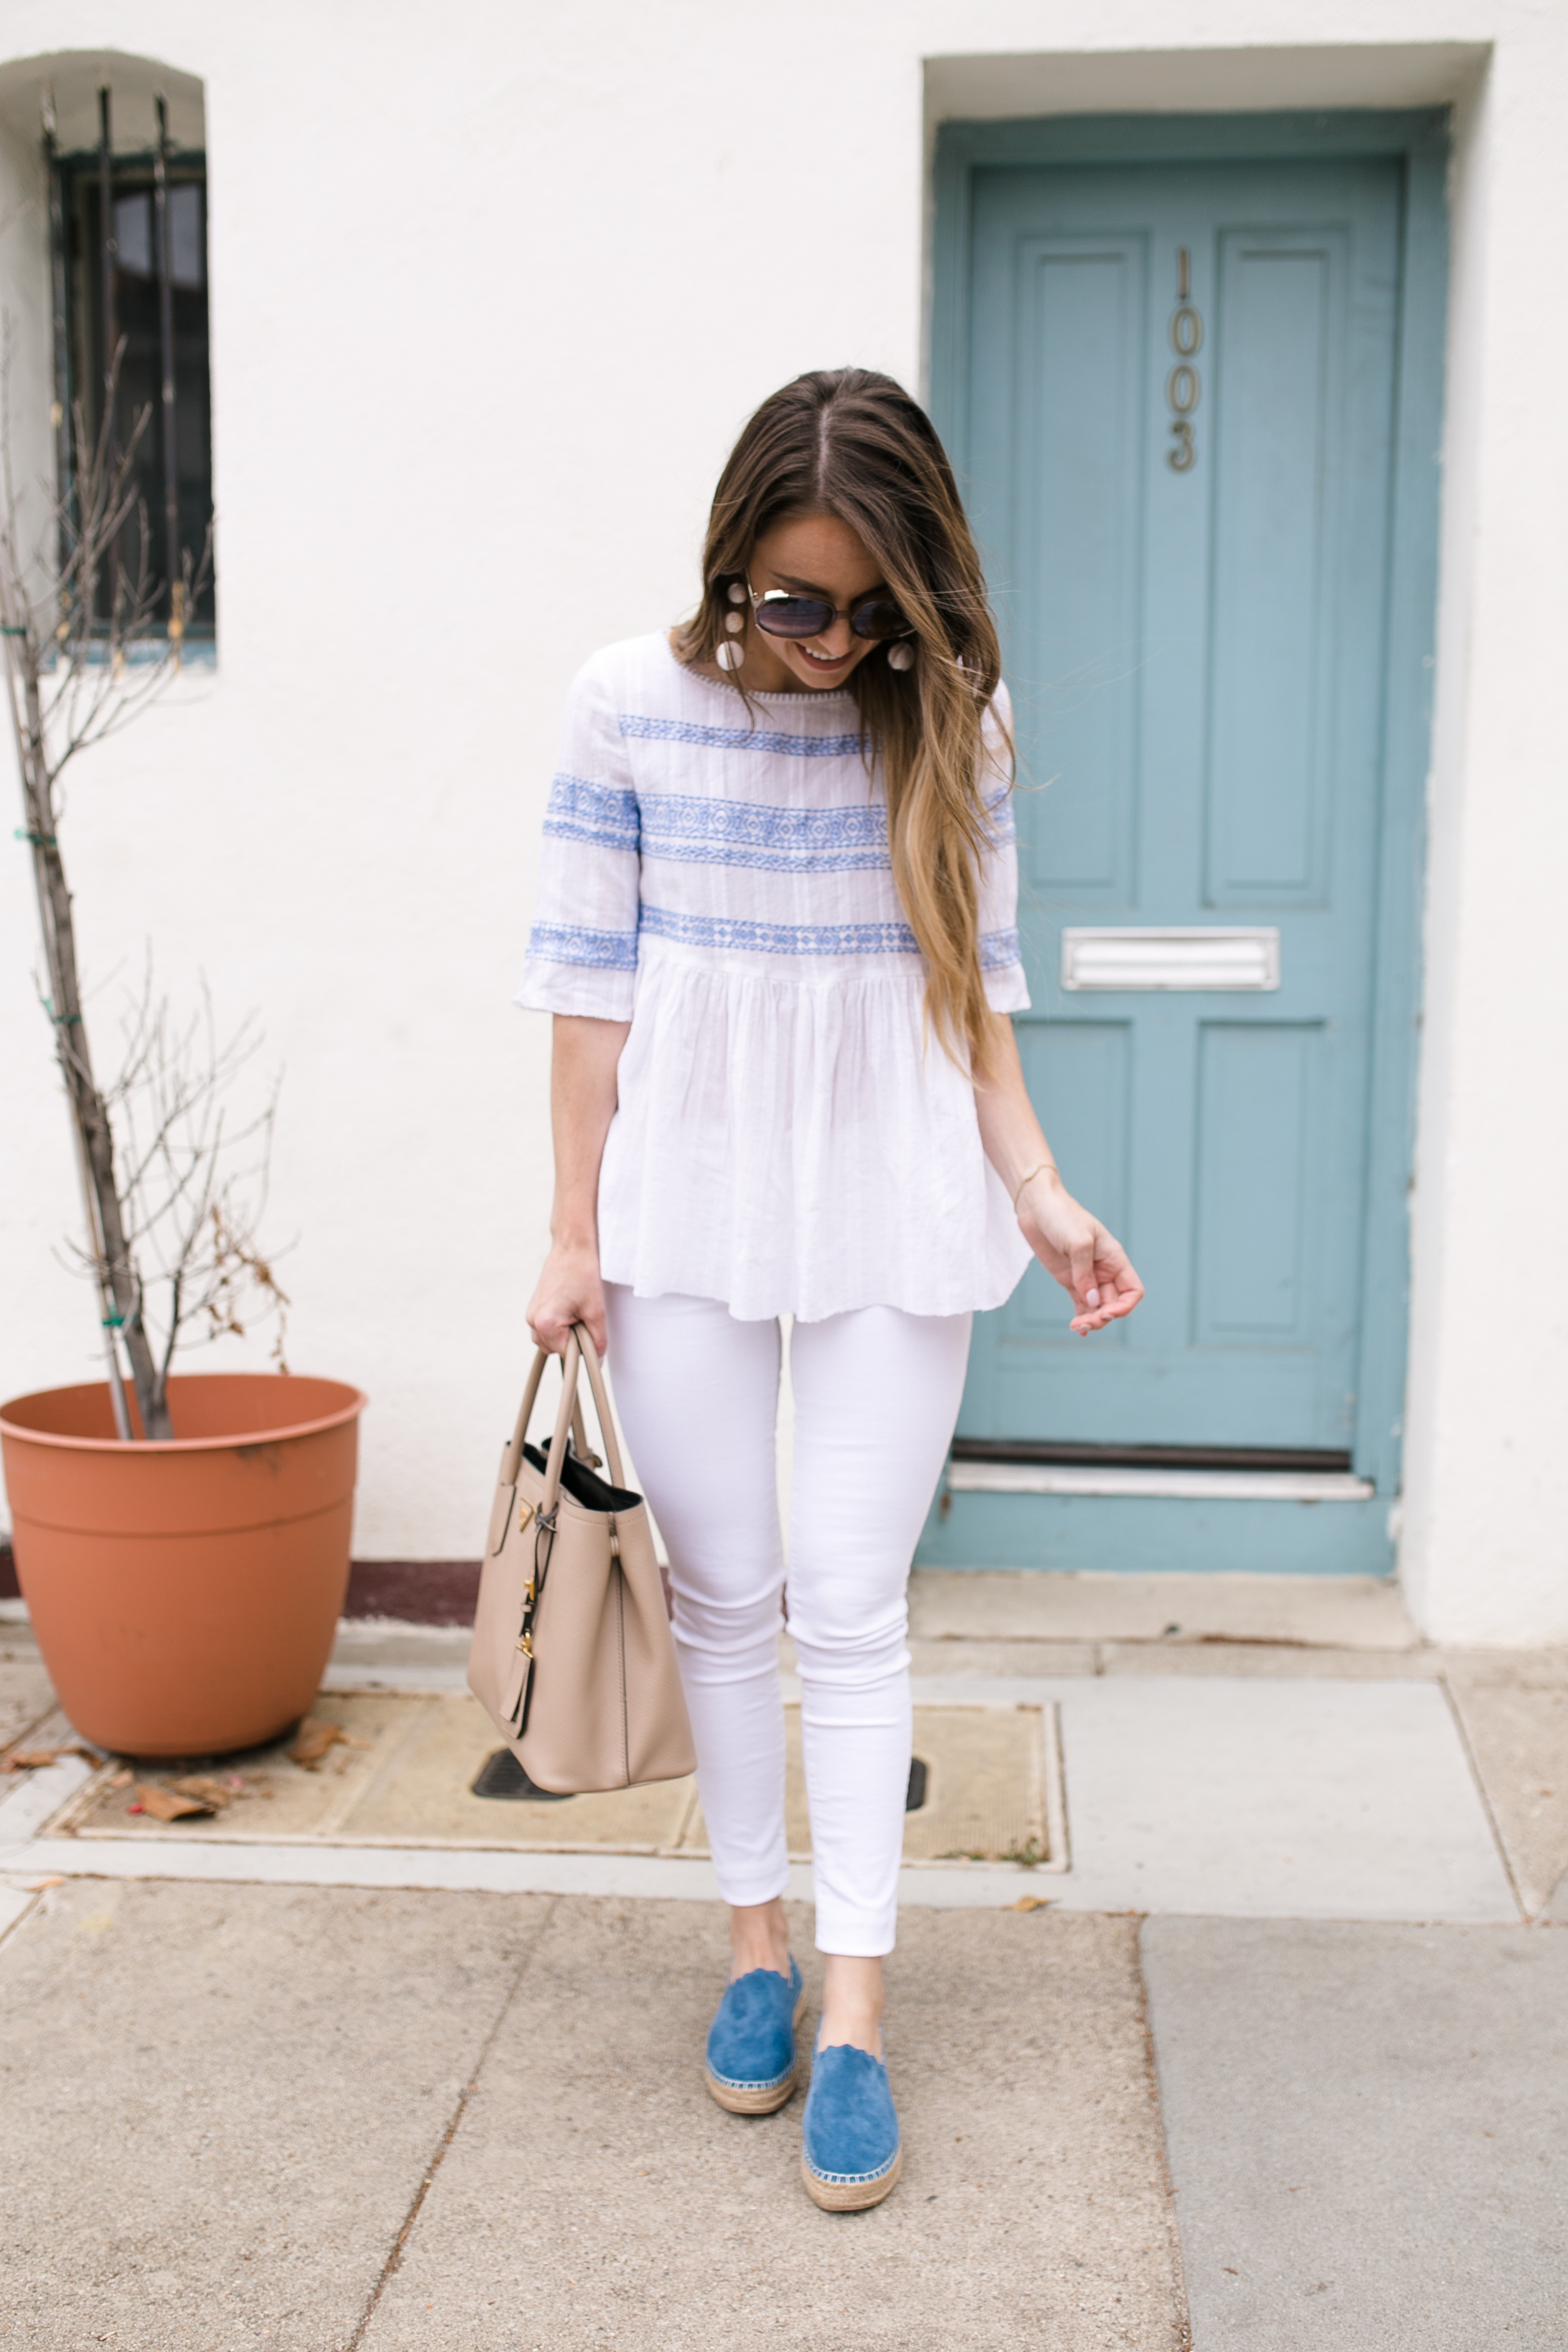 Style blogger Daryl-Ann Denner wearing an embroidered blue and white top with white jeans and chloe espadrille dupes